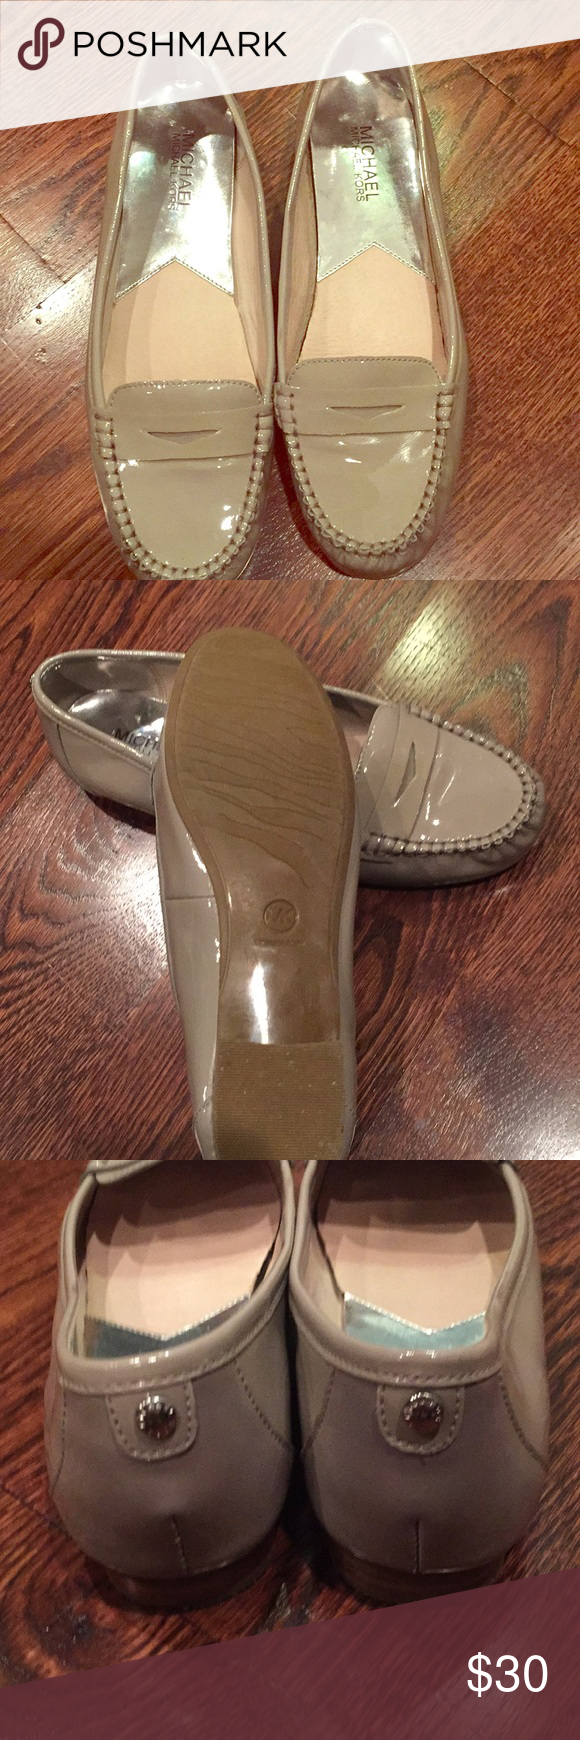 Michael Kors Gray Patent Loafers 8 1/2 Like new MK gray patent loafers. Wore once! Excellent condition. Size 8 1/2 MICHAEL Michael Kors Shoes Flats & Loafers